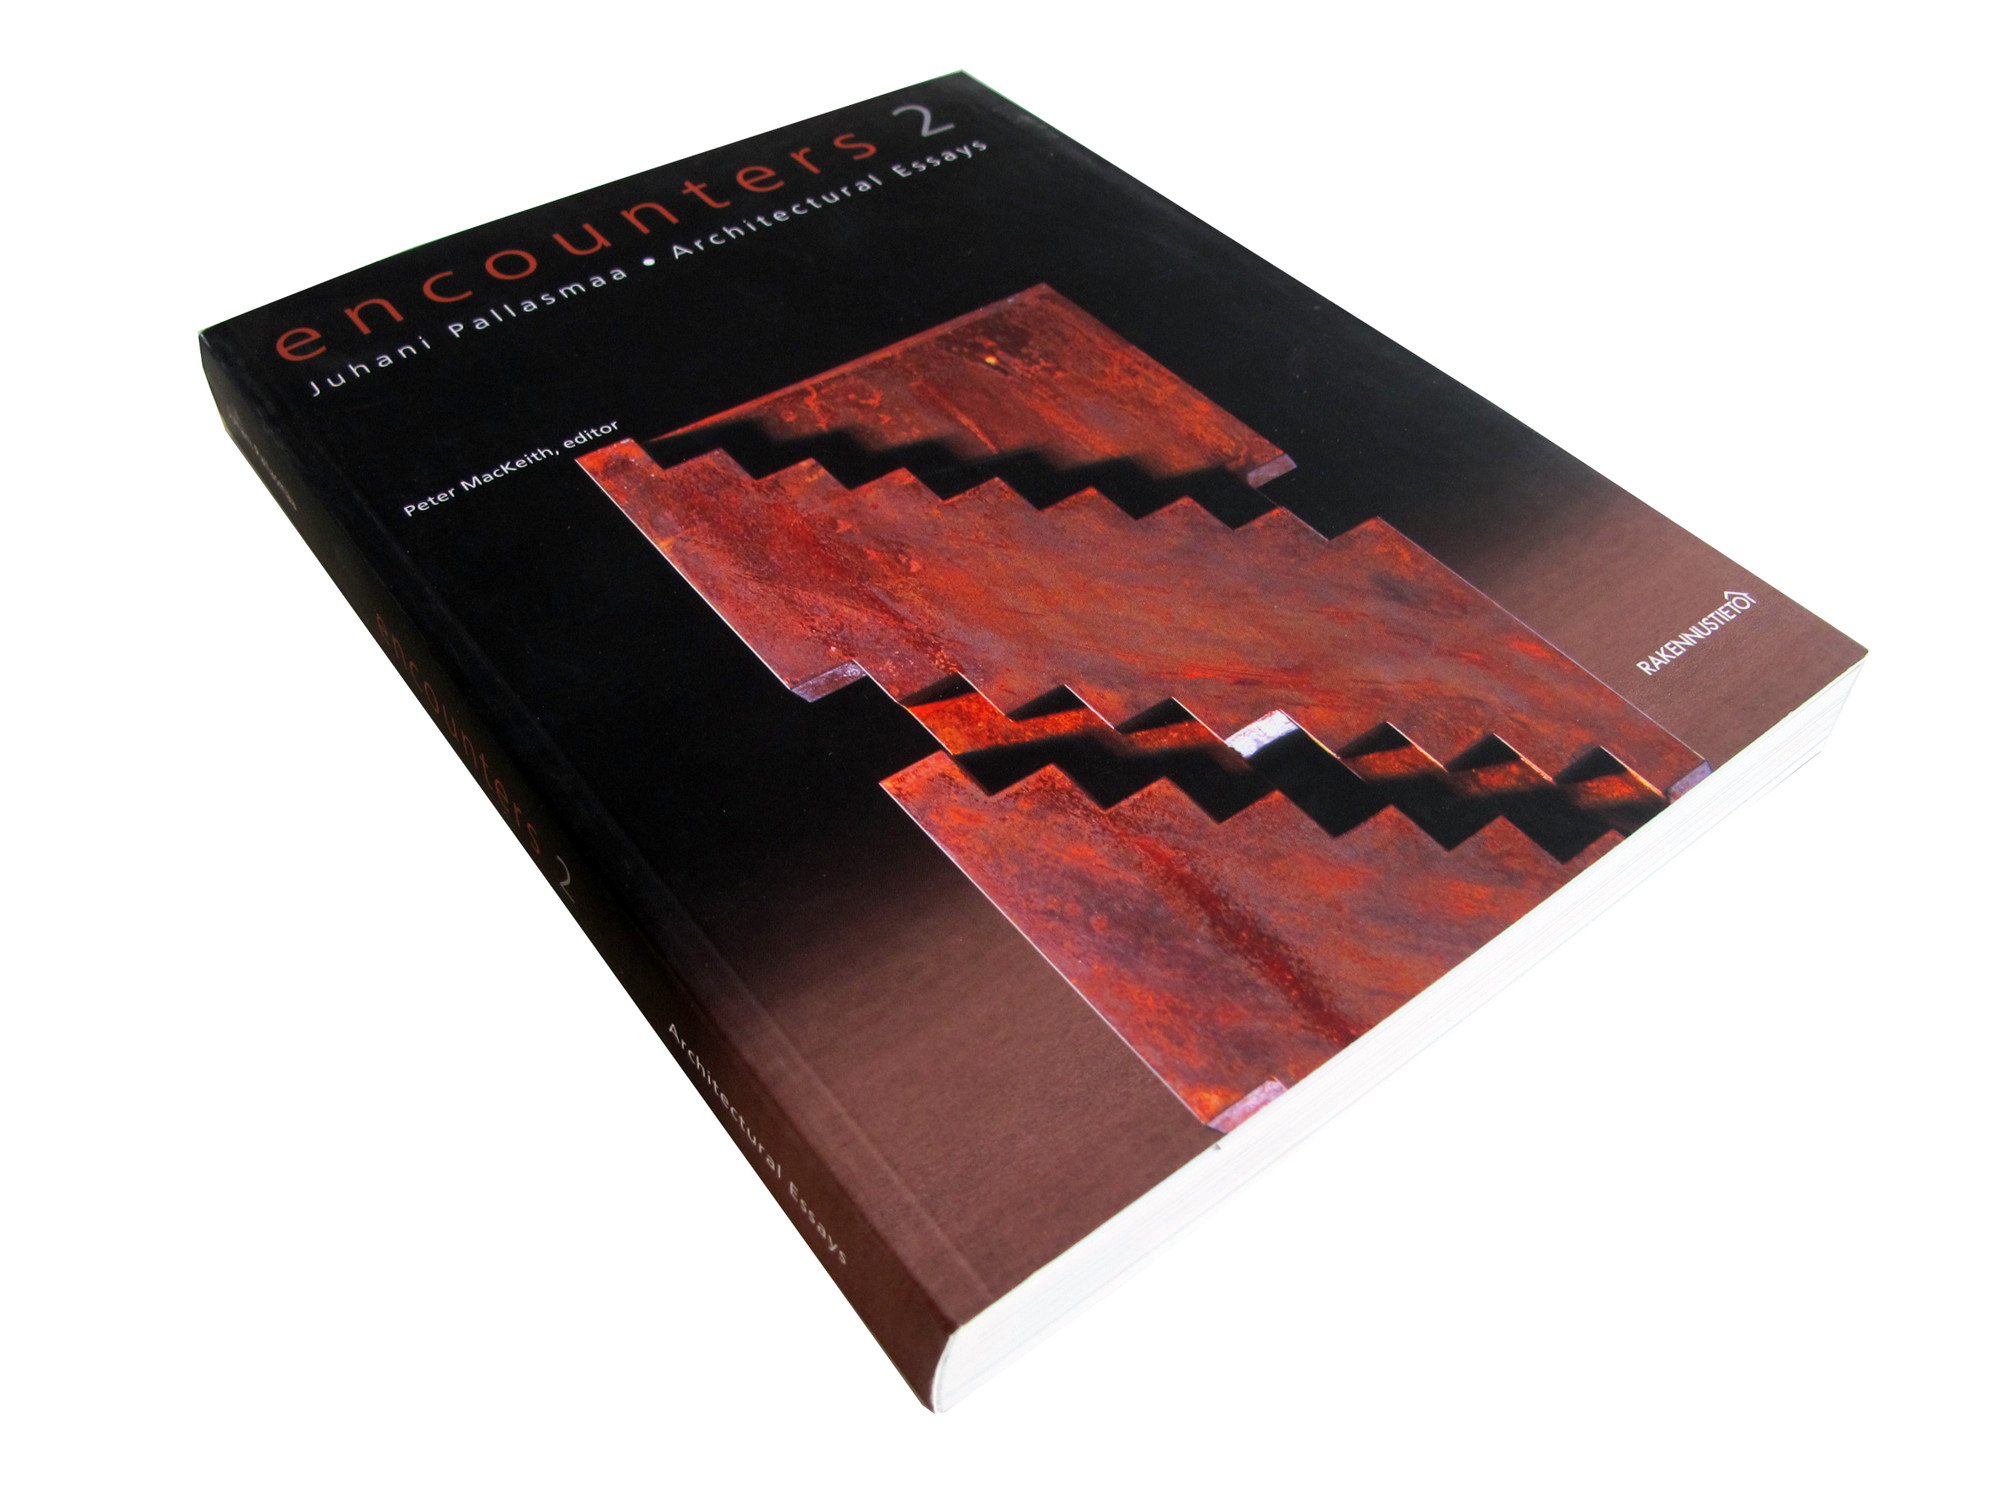 encounters 2 architectural essays peter mackeith  encounters 2 architectural essays peter mackeith